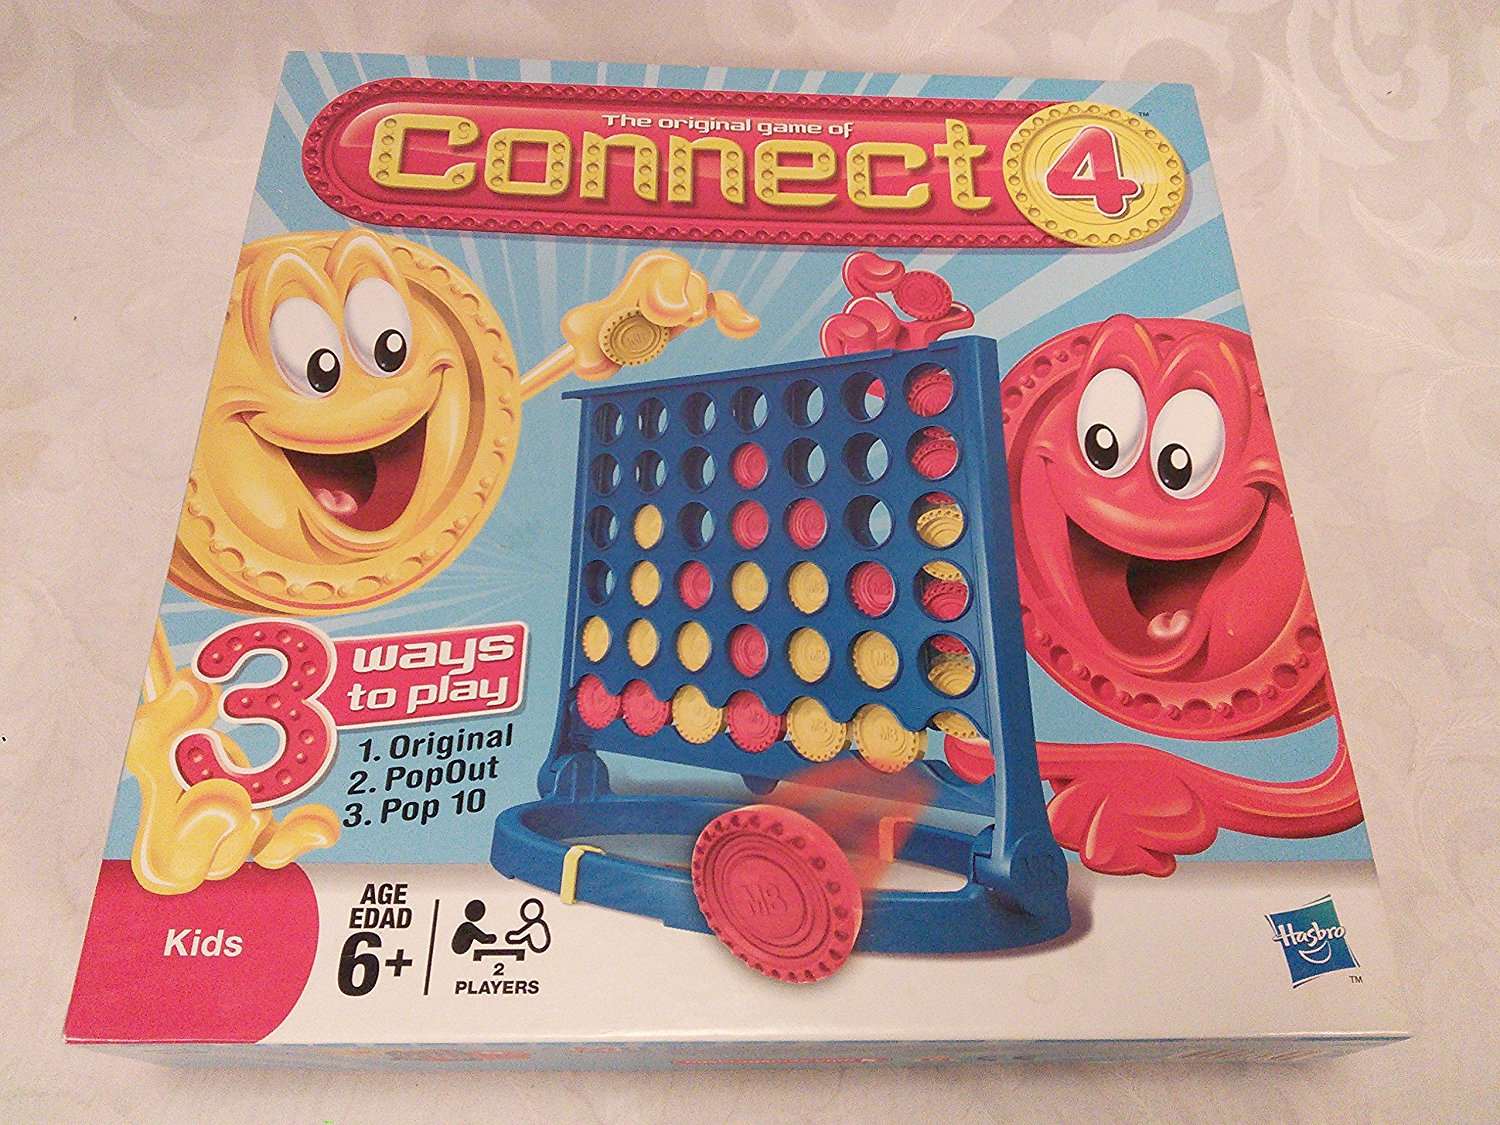 The Original Game Of Connect 4 For Kids 2008 Hasbro MB Games, Ages from 6 By Milton Bradley by